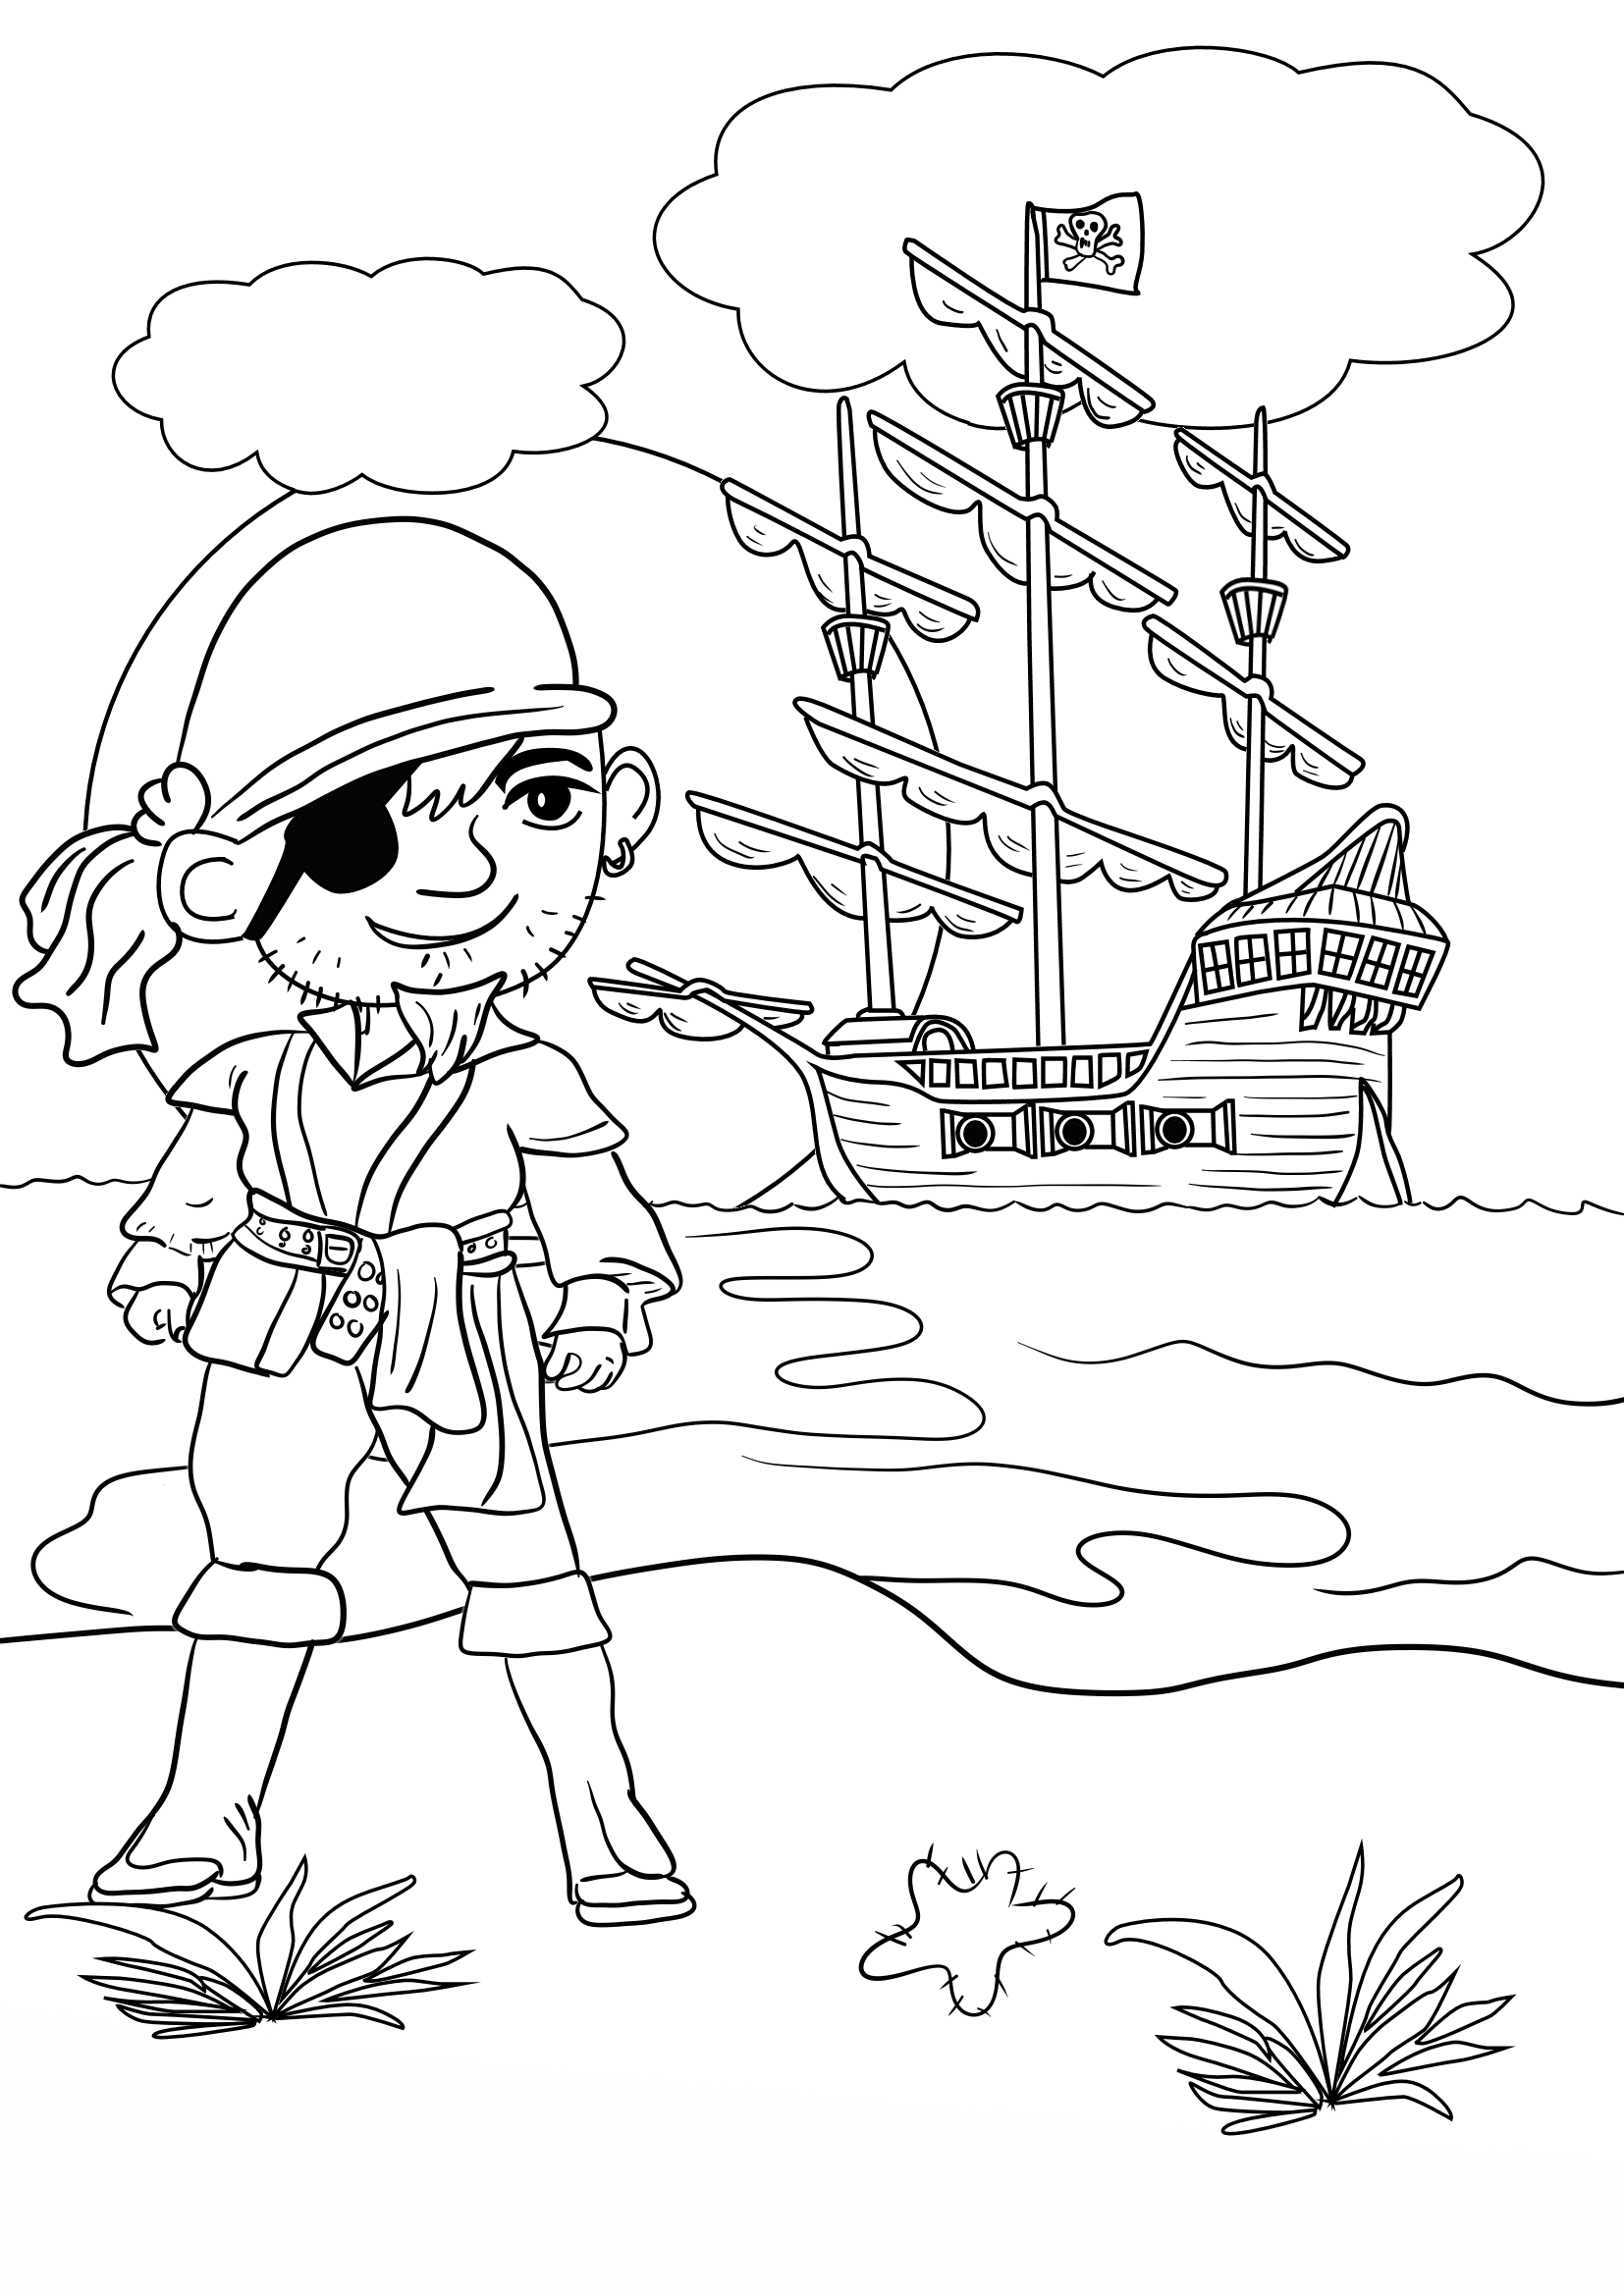 Pirate Colouring Pages for Kids - In The Playroom